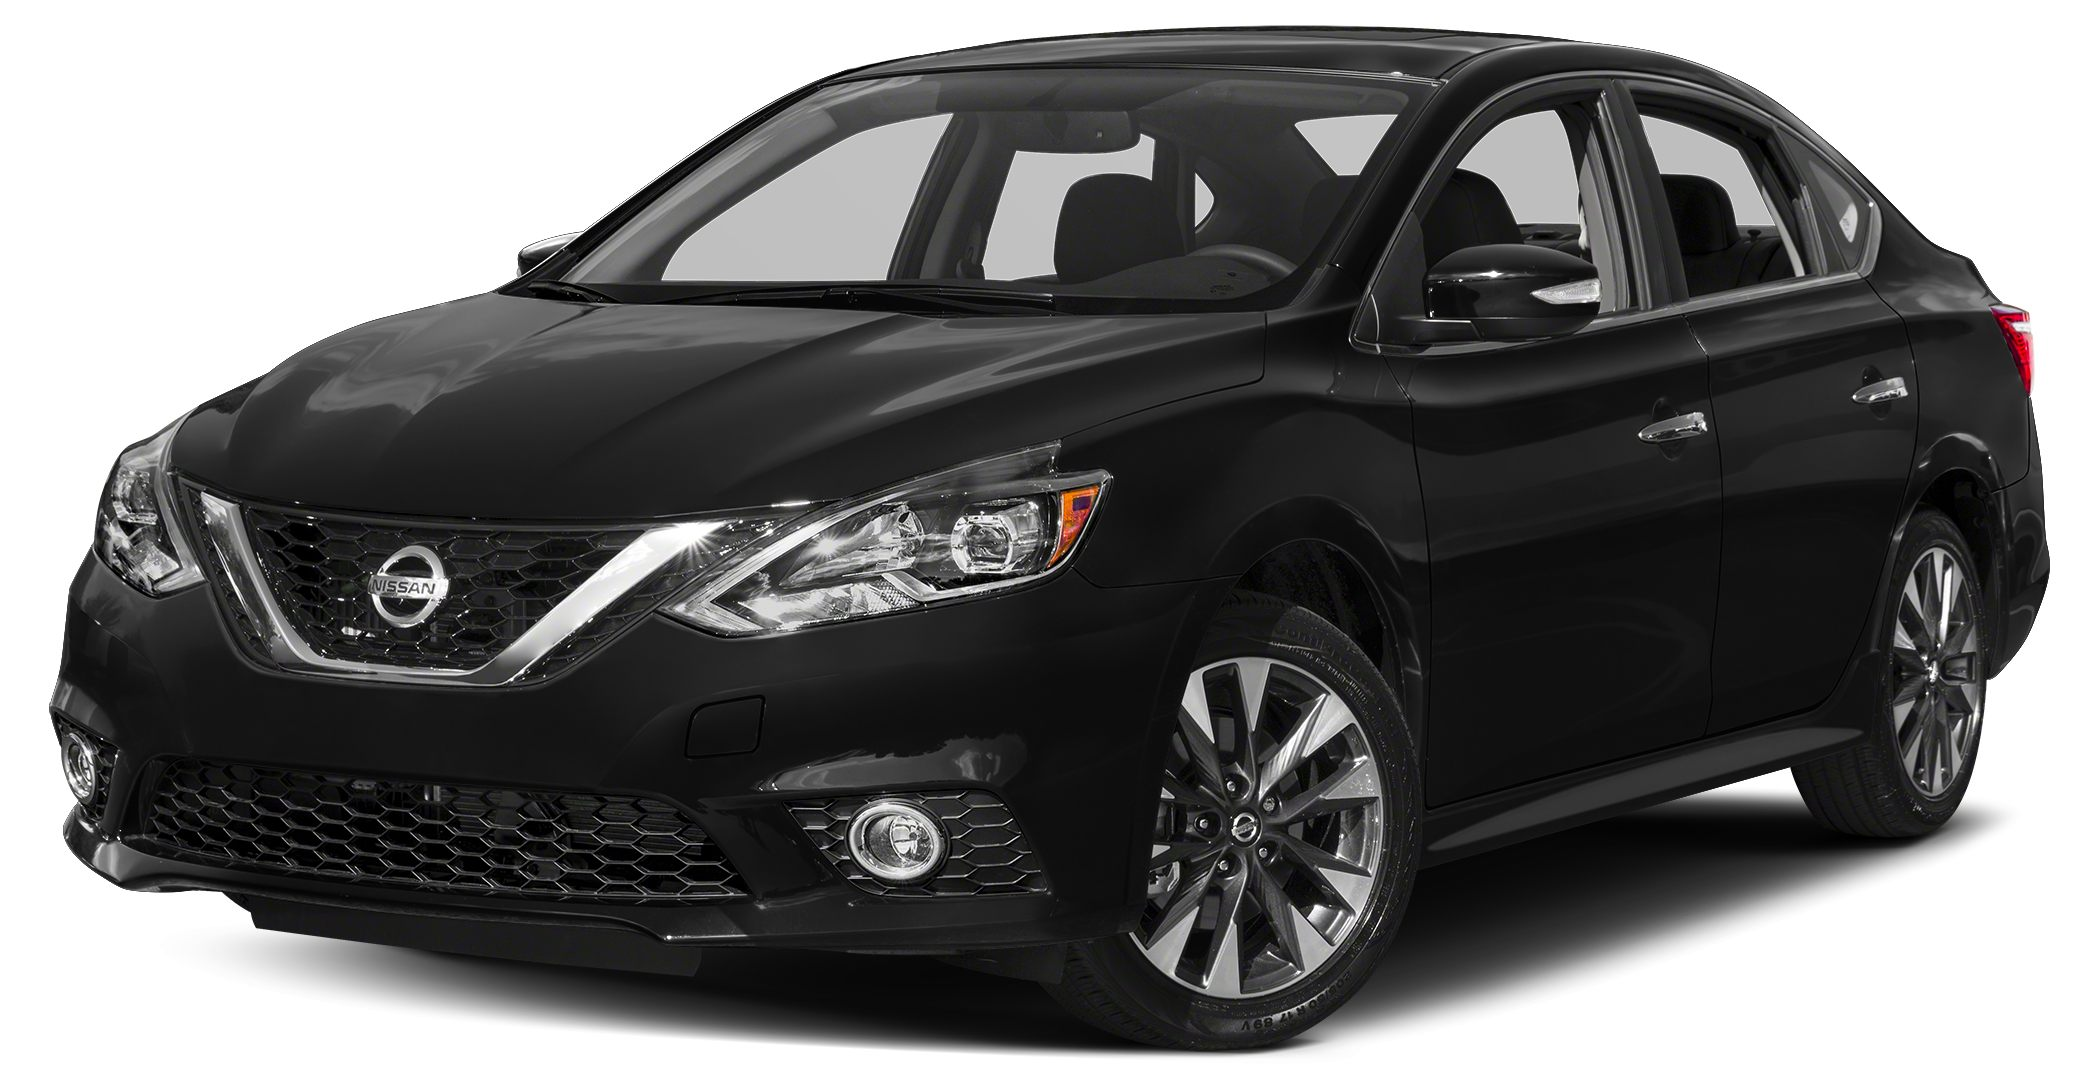 2017 Nissan Sentra SR Turbo This 2017 Nissan SENTRA SR Turbo will sell fast Bluetooth Save mon